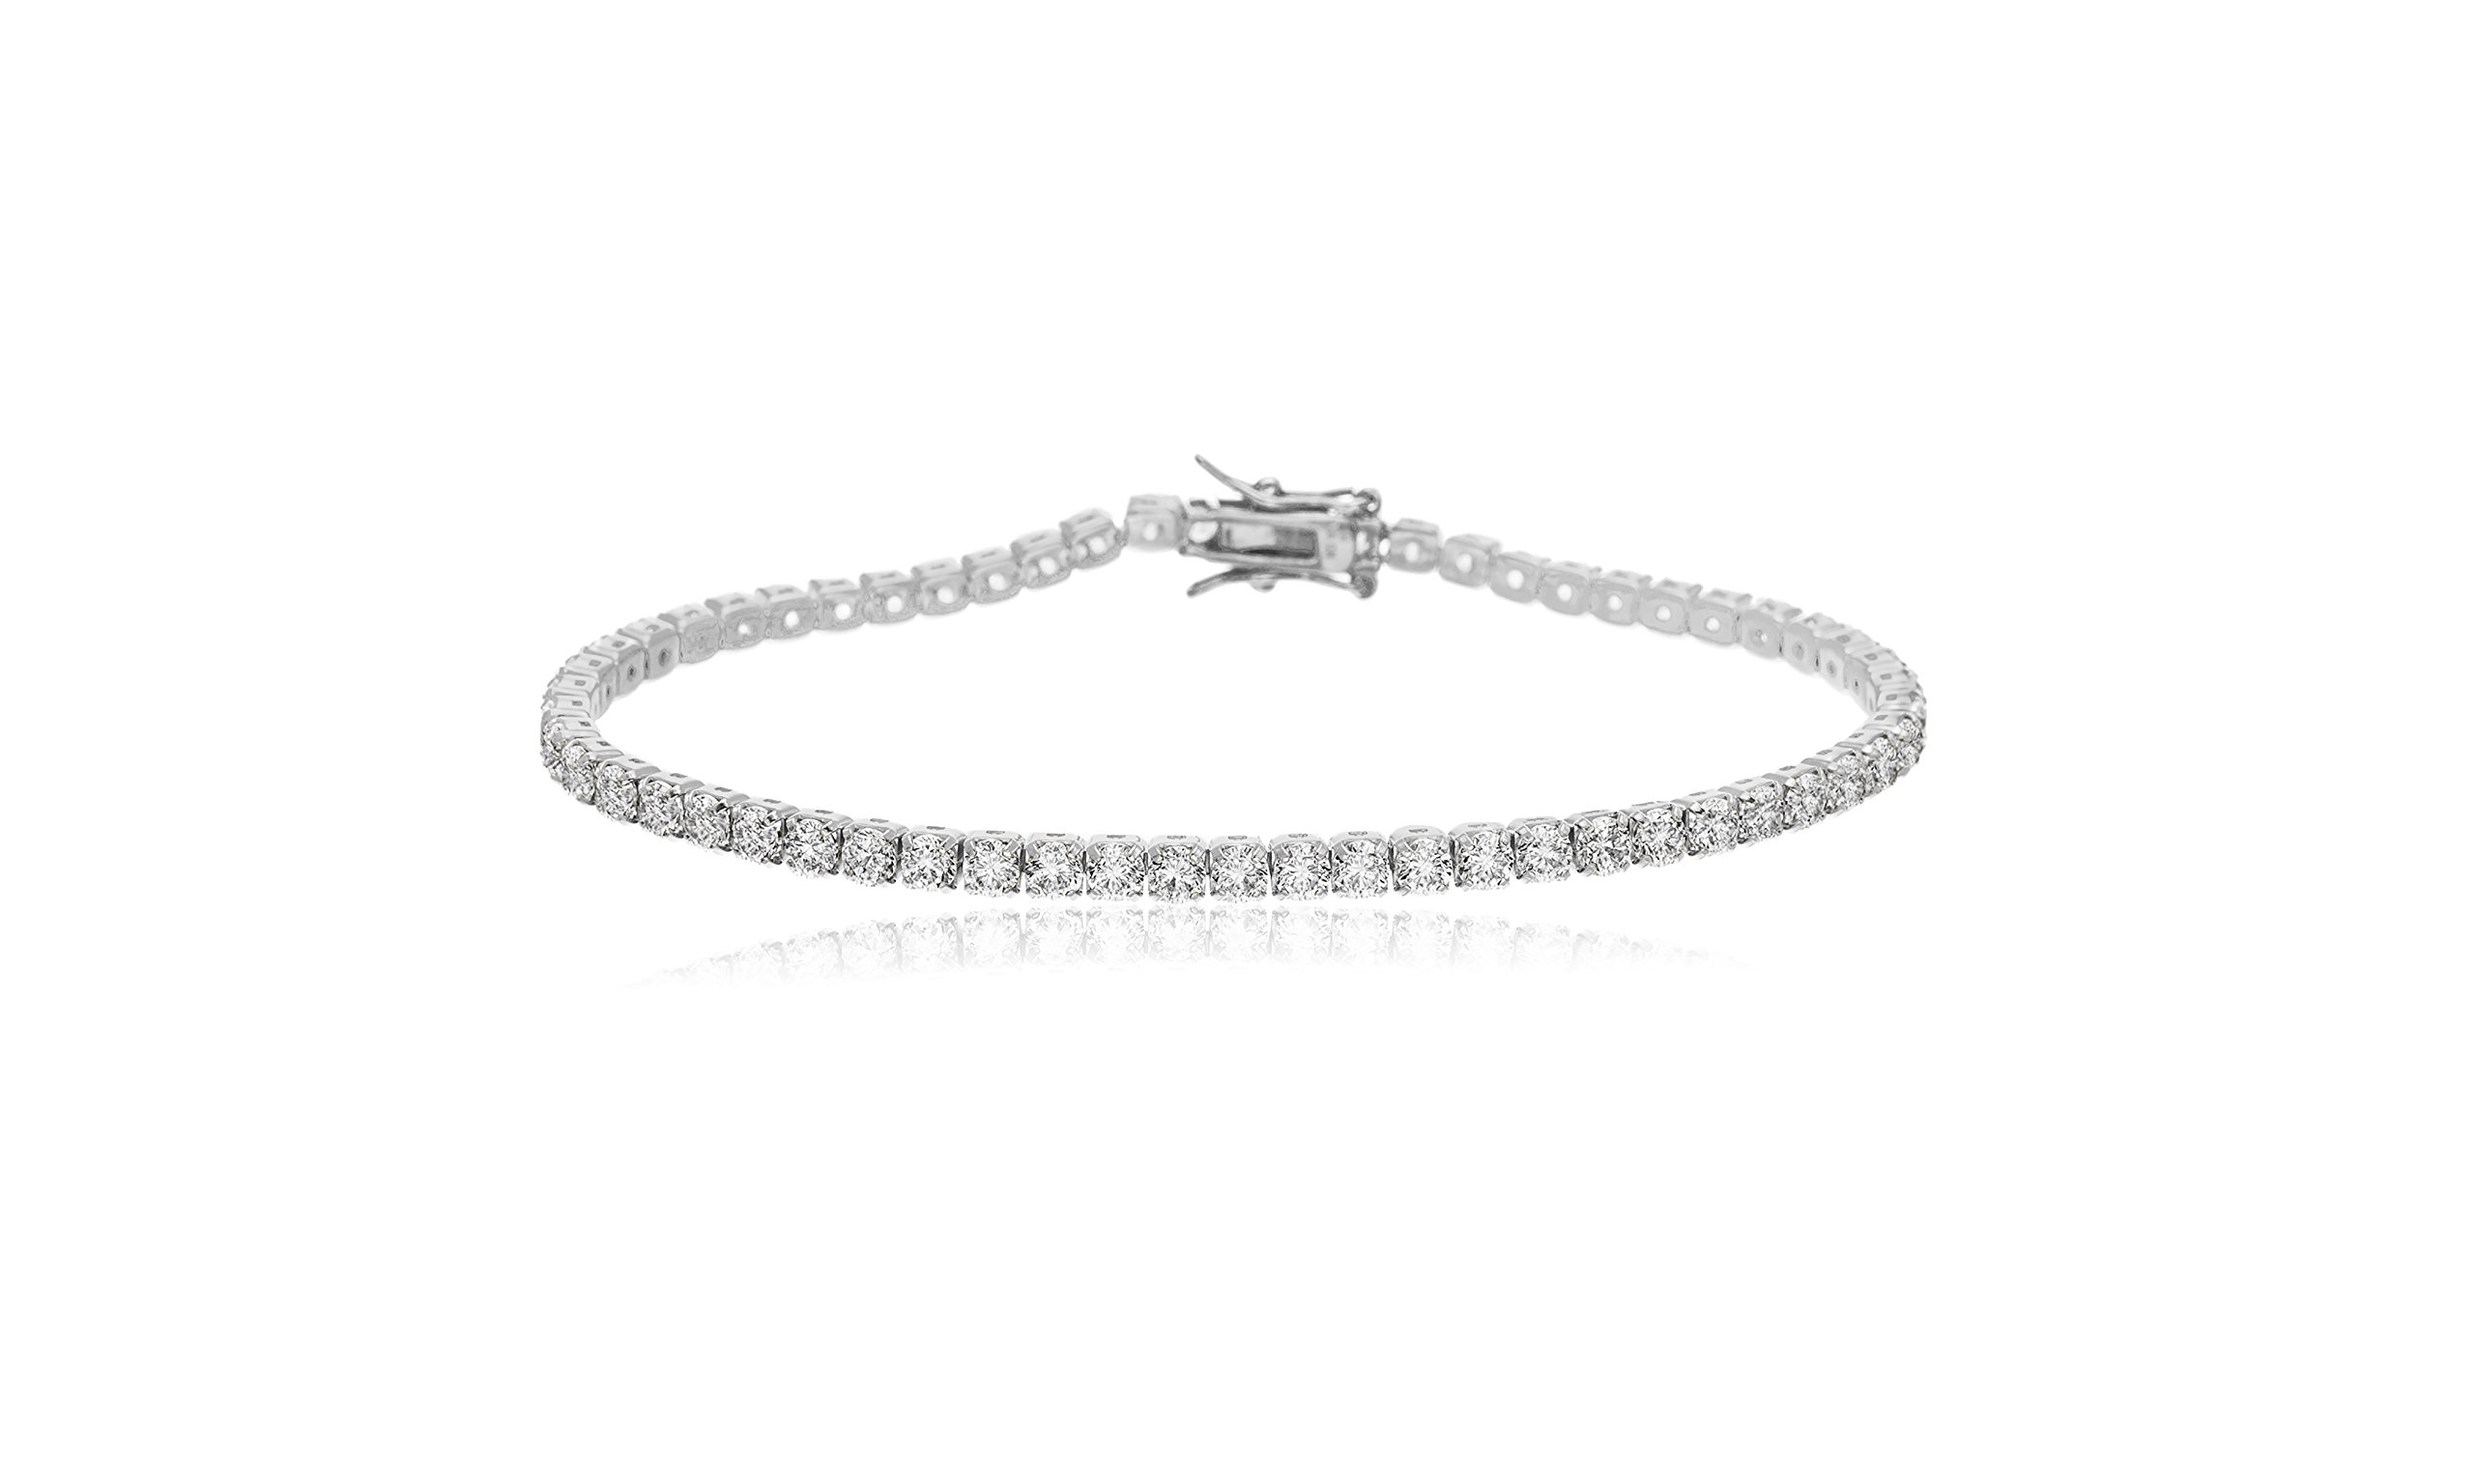 Devin Rose Womens 7.25'' Tennis Bracelet Made With Swarovski Crystals in Sterling Silver (White)